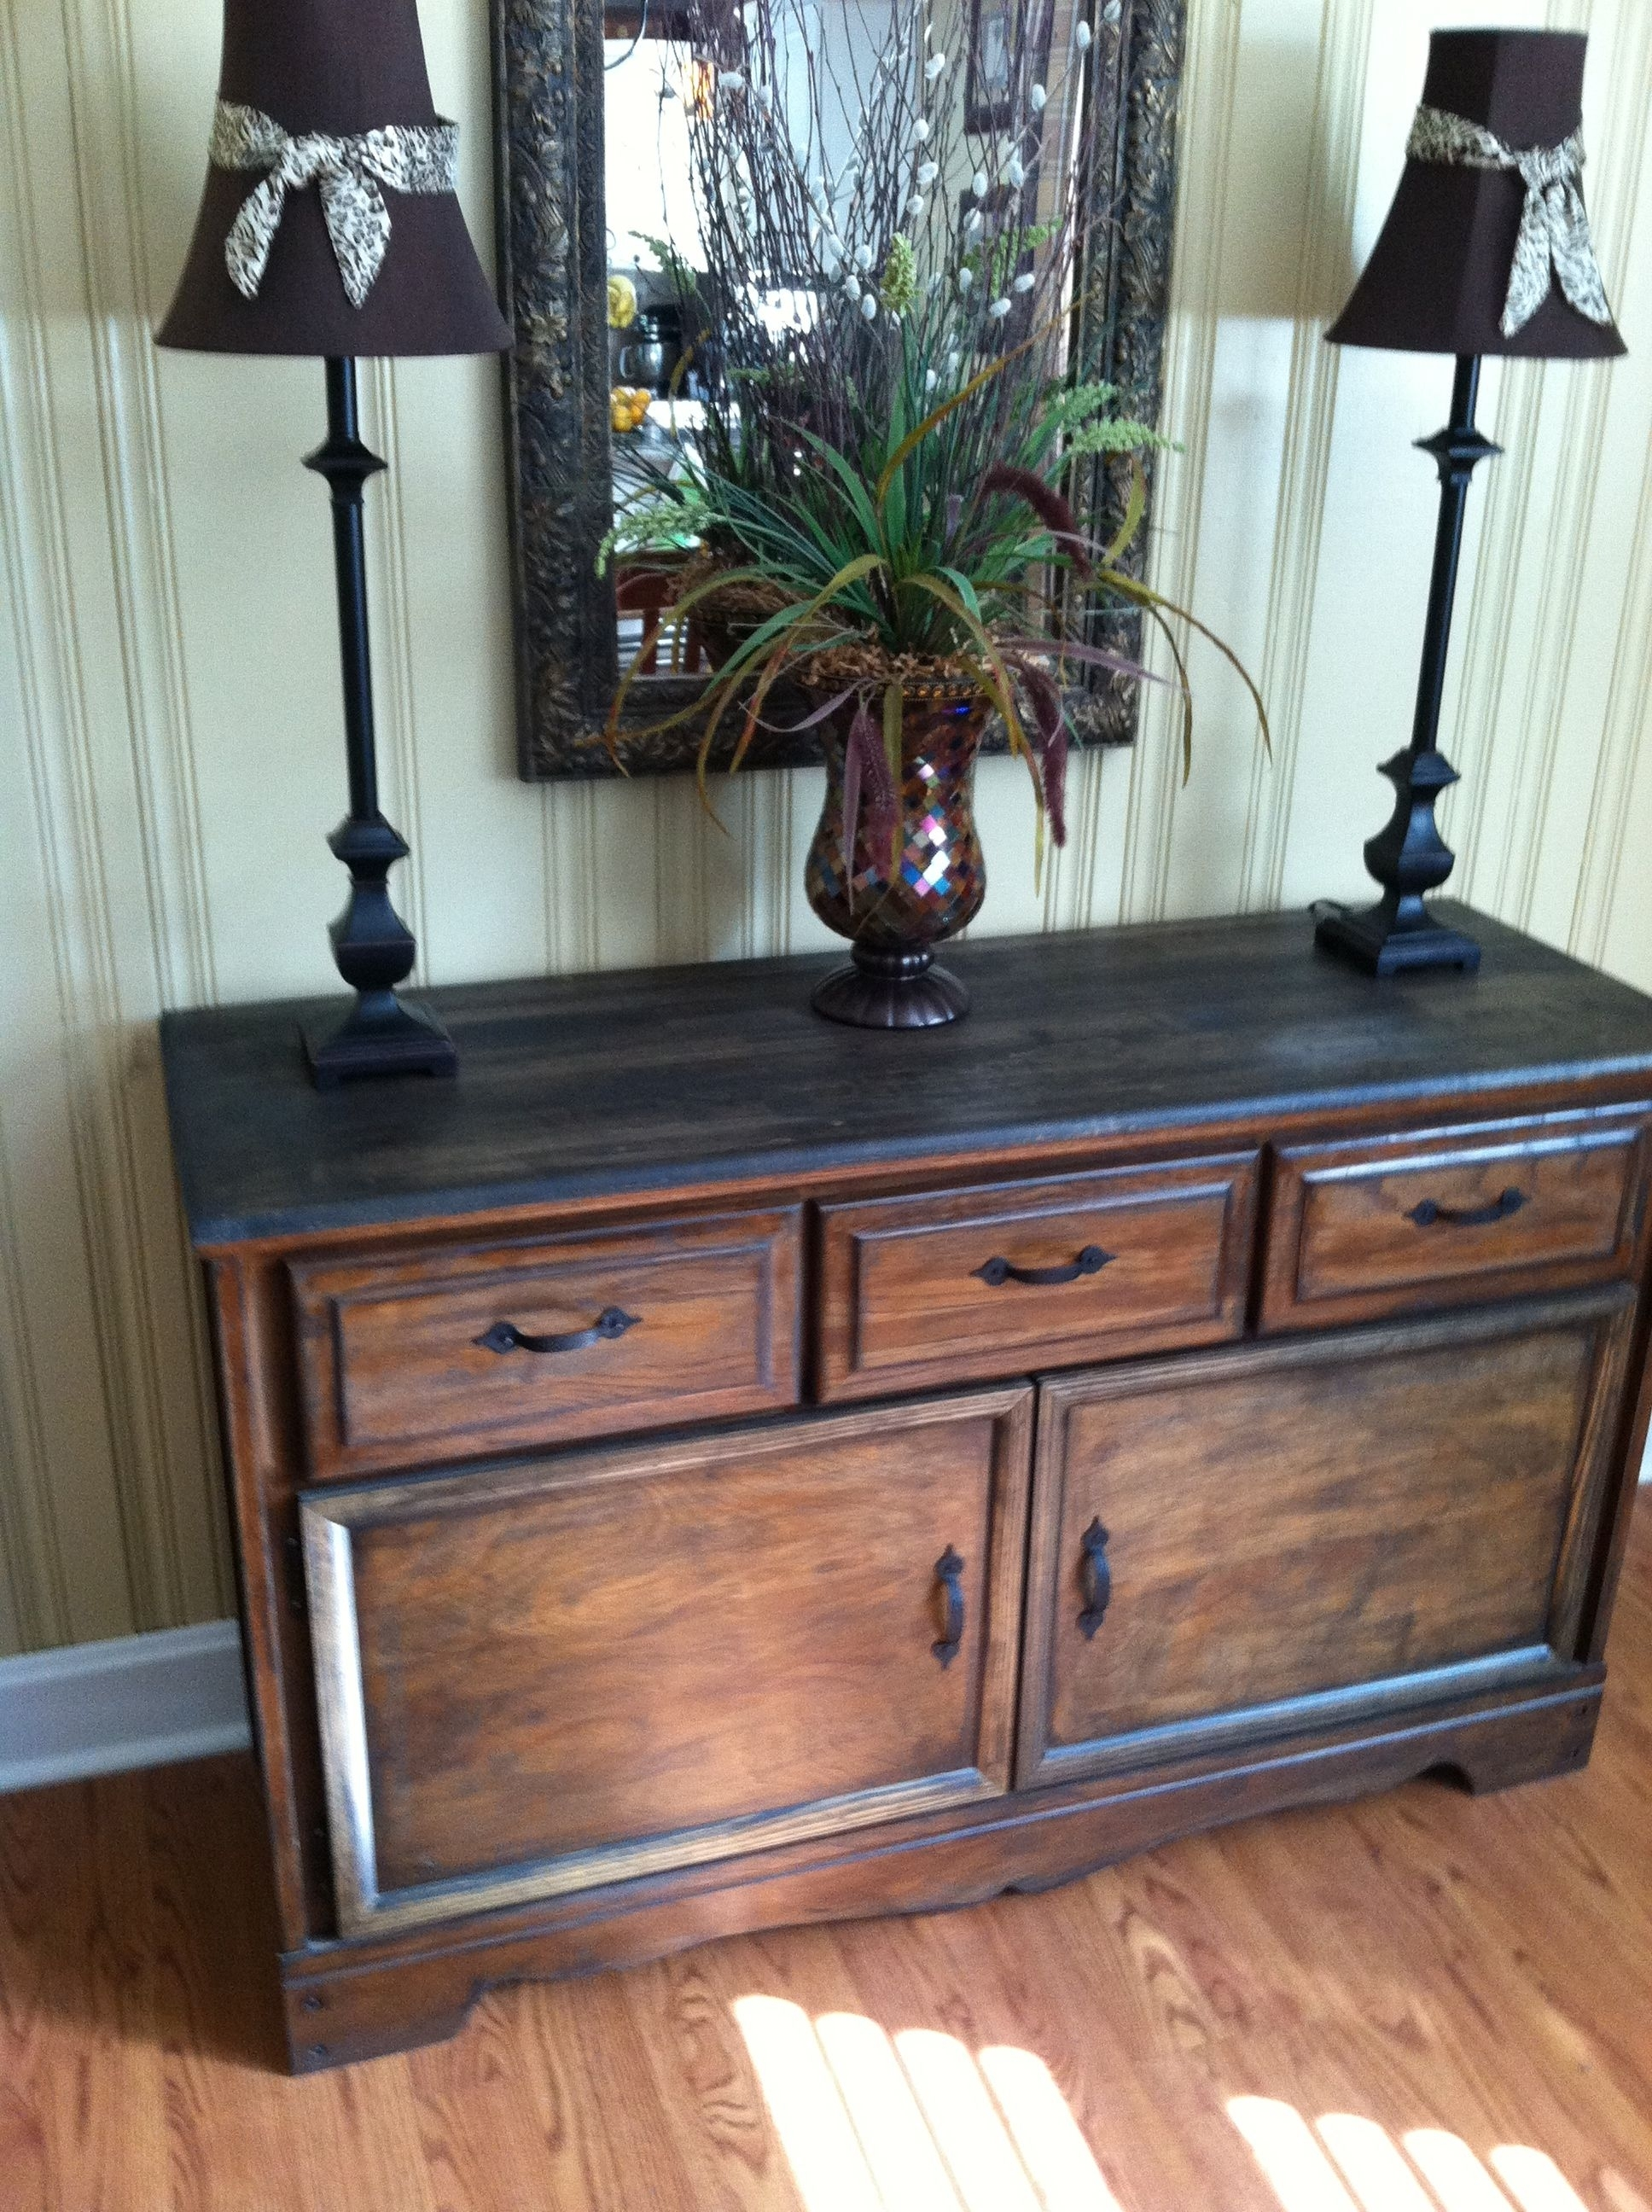 Old Refurbished Dresser Turned Buffet Table $35 Goodwill Find In Cass 2 Door Sideboards (View 13 of 30)